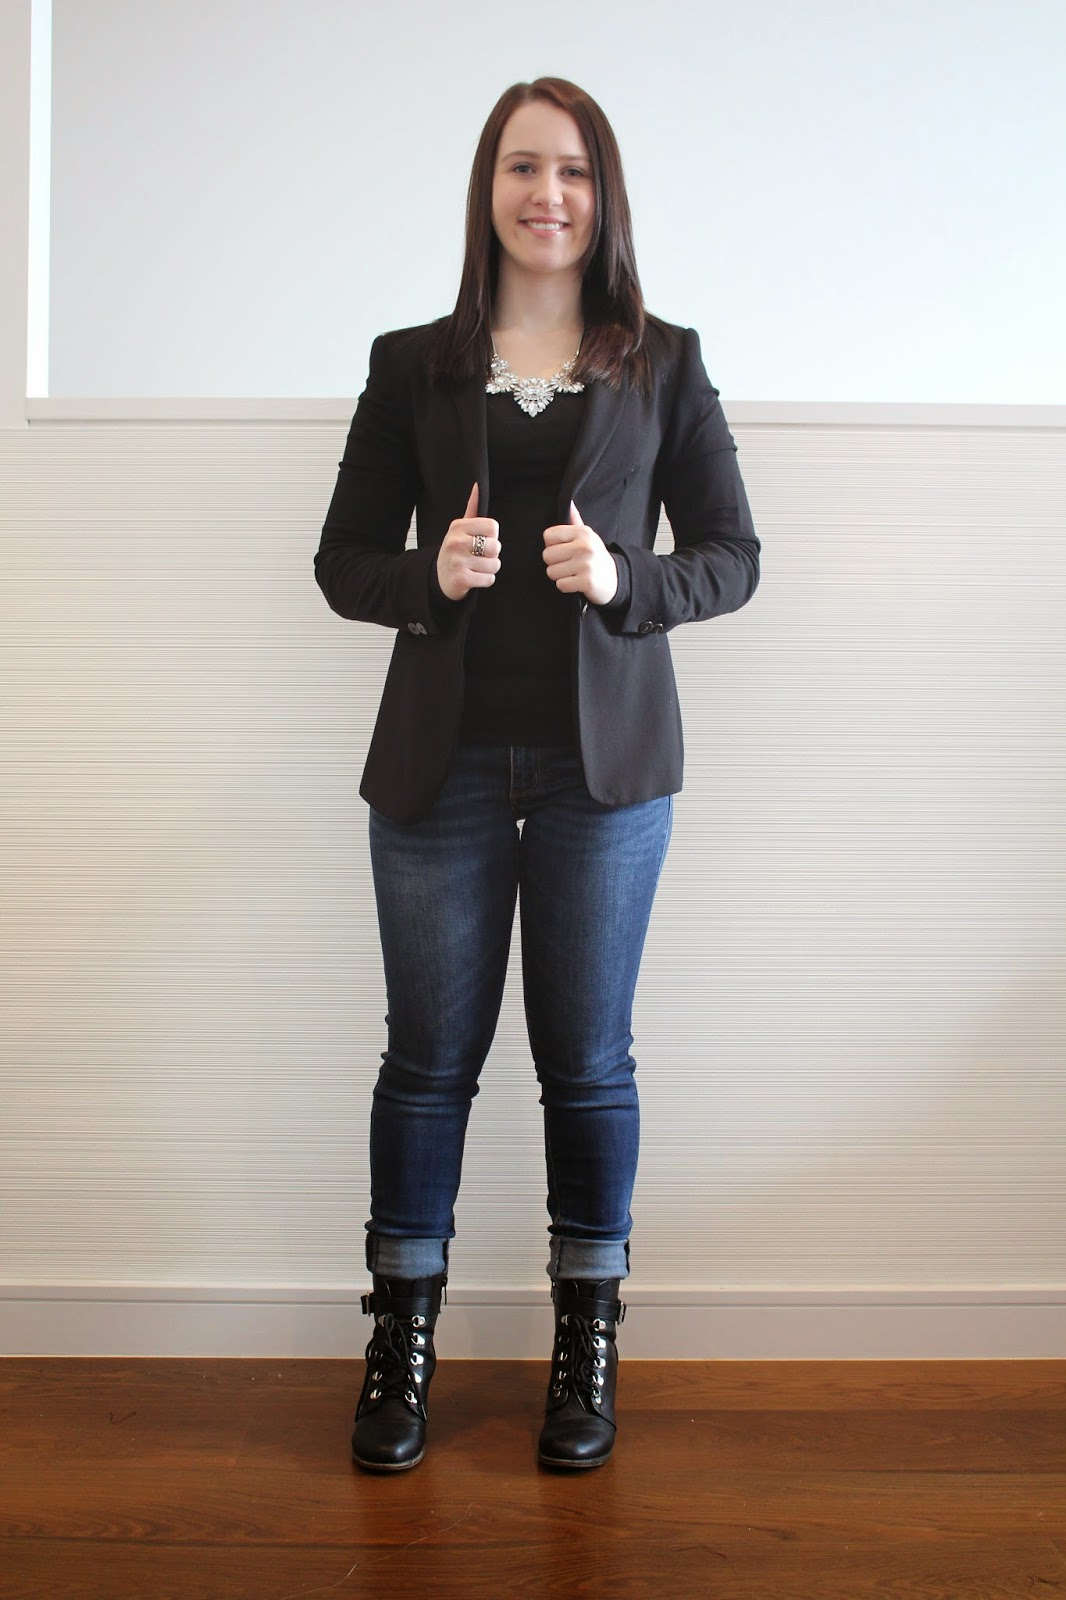 Jeans, black long sleeved top, black zara blazer, novo biker booties, statement necklace, pandora rings, spring outfit, winter outfit, autumn outfit, fall outfit, everyday outfit, uni outfit, college outfit, work outfit,